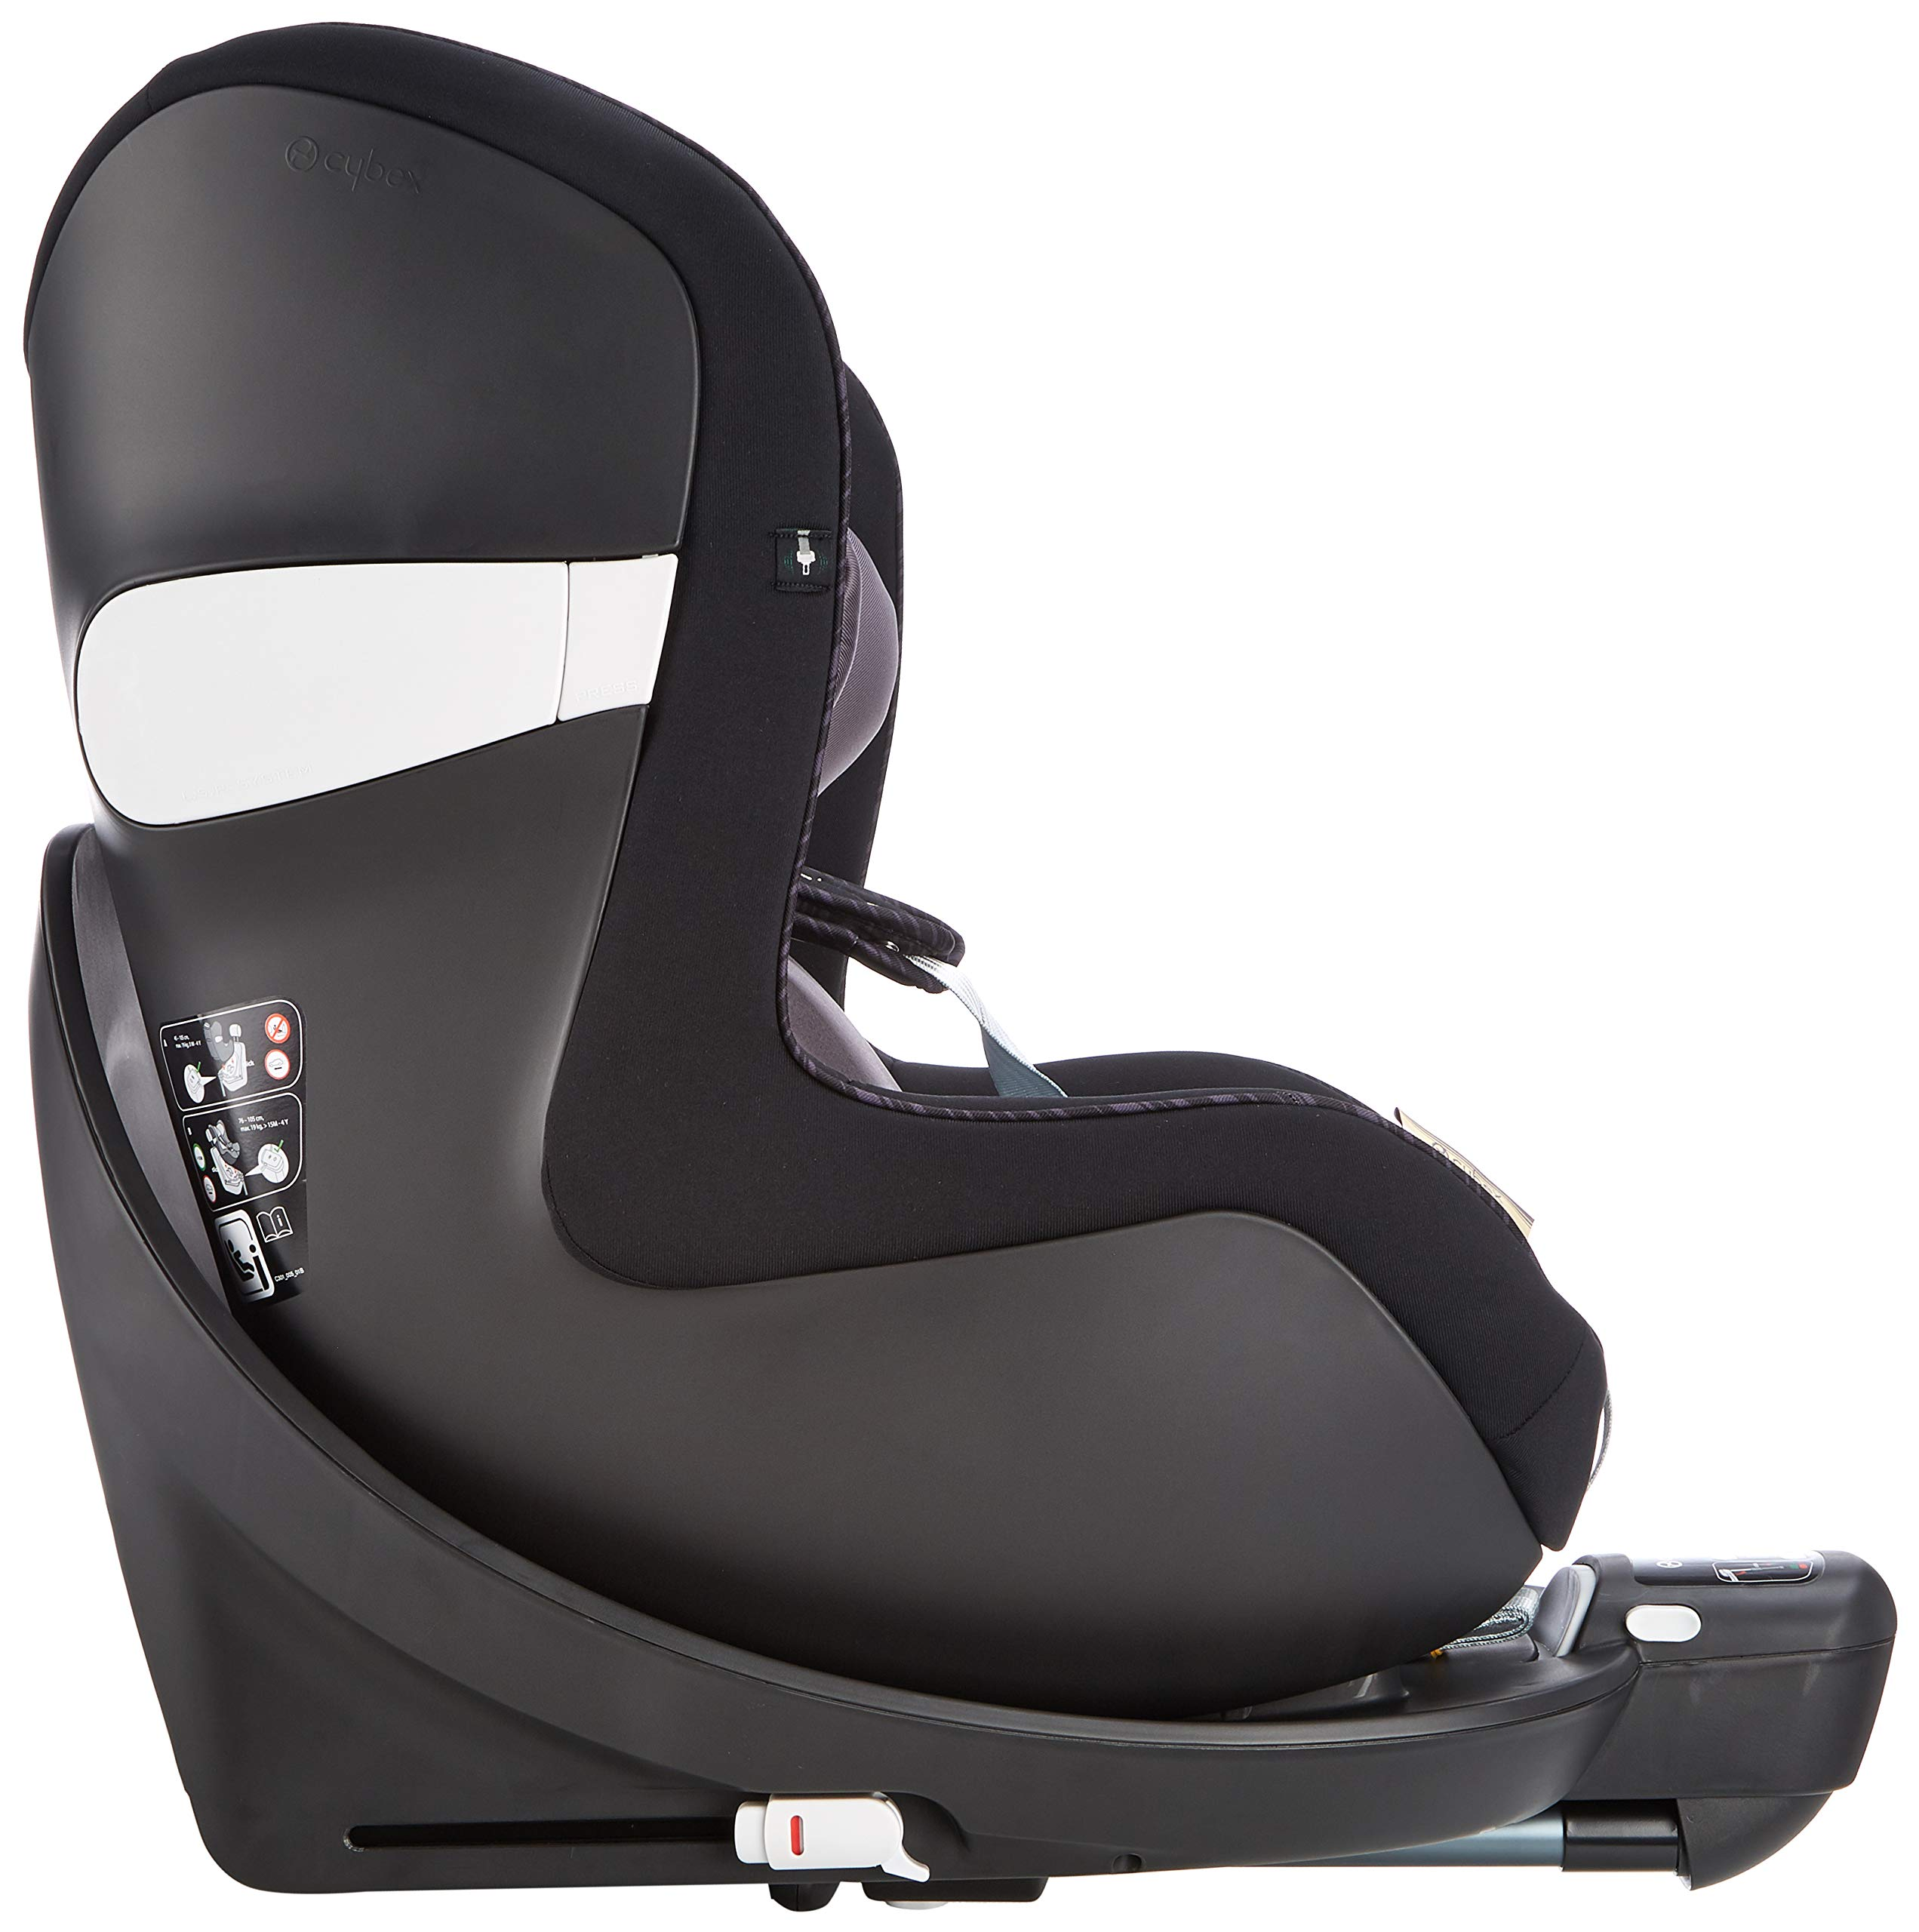 CYBEX Gold Sirona M2 i-Size Car Seat, Incl. Base M, From Birth to approx. 4 years, Up to Max. 105 cm Height, Premium Black  Cybex gold car seat sirona m2 i-size incl. base m Colour: premium black Item number: 519000959 4